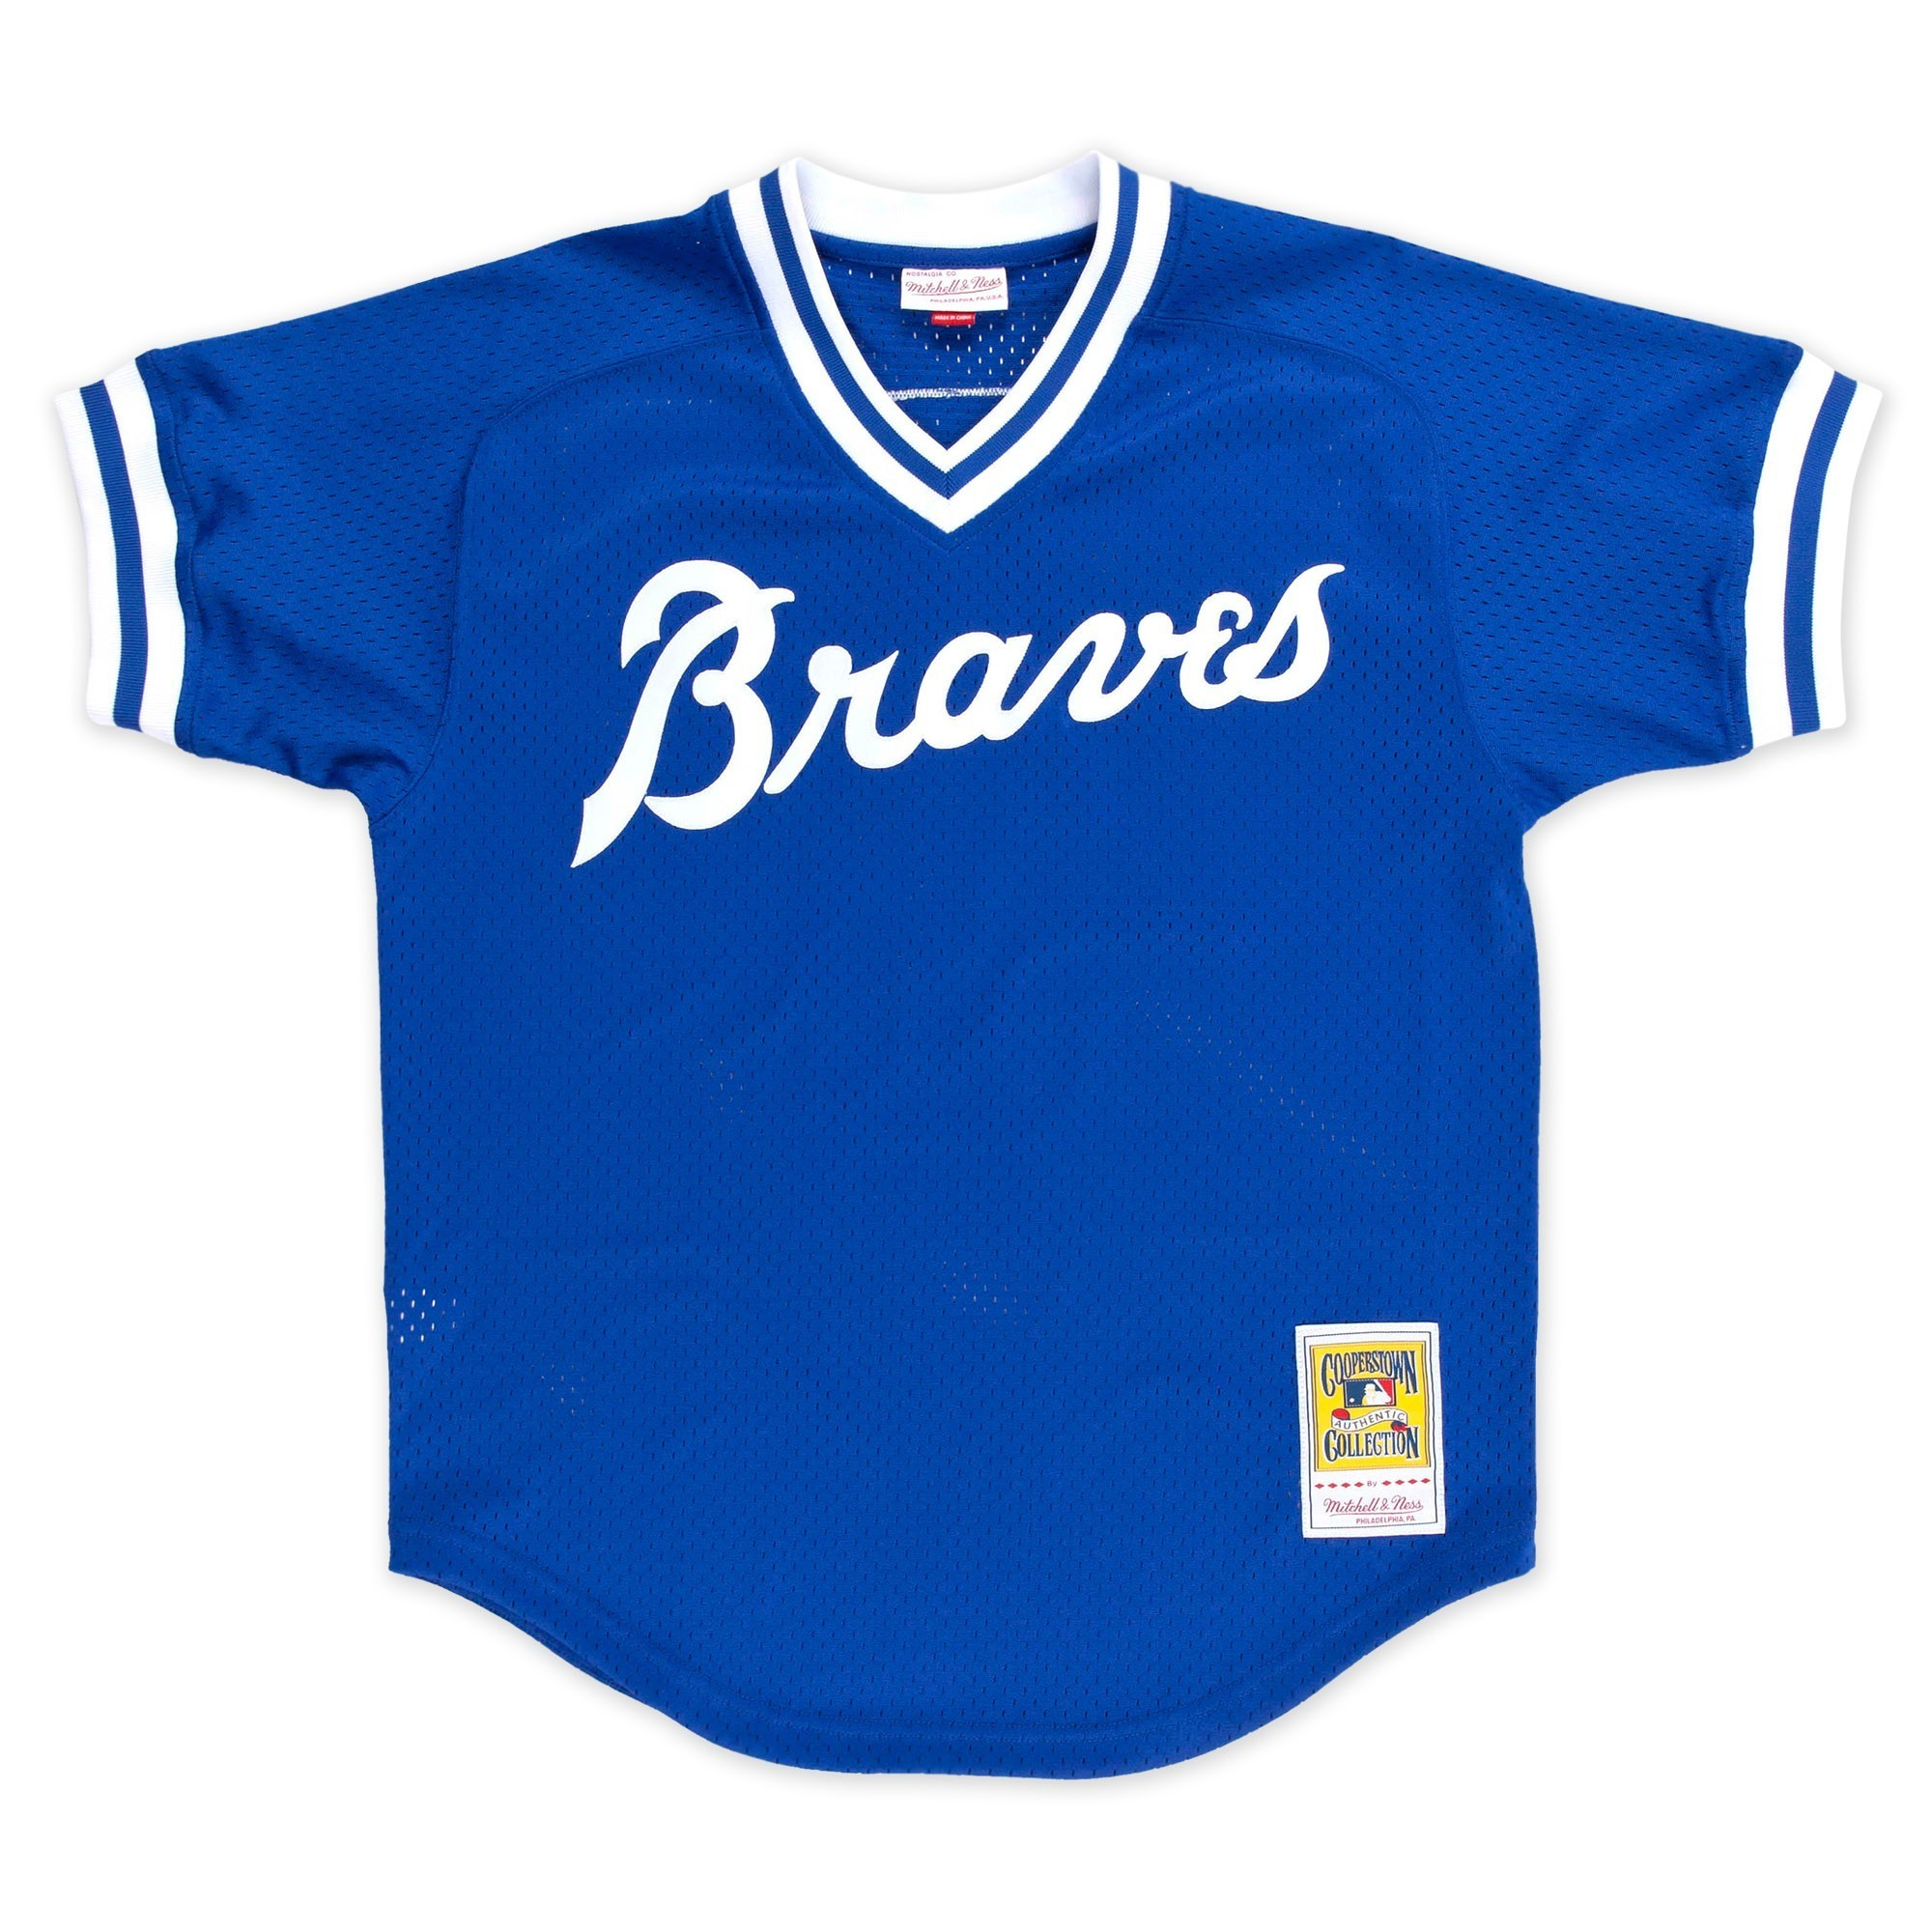 37ee3f57514 Details about Dale Murphy Atlanta Braves Mitchell   Ness Men s Authentic  1981 BP Jersey - Blue